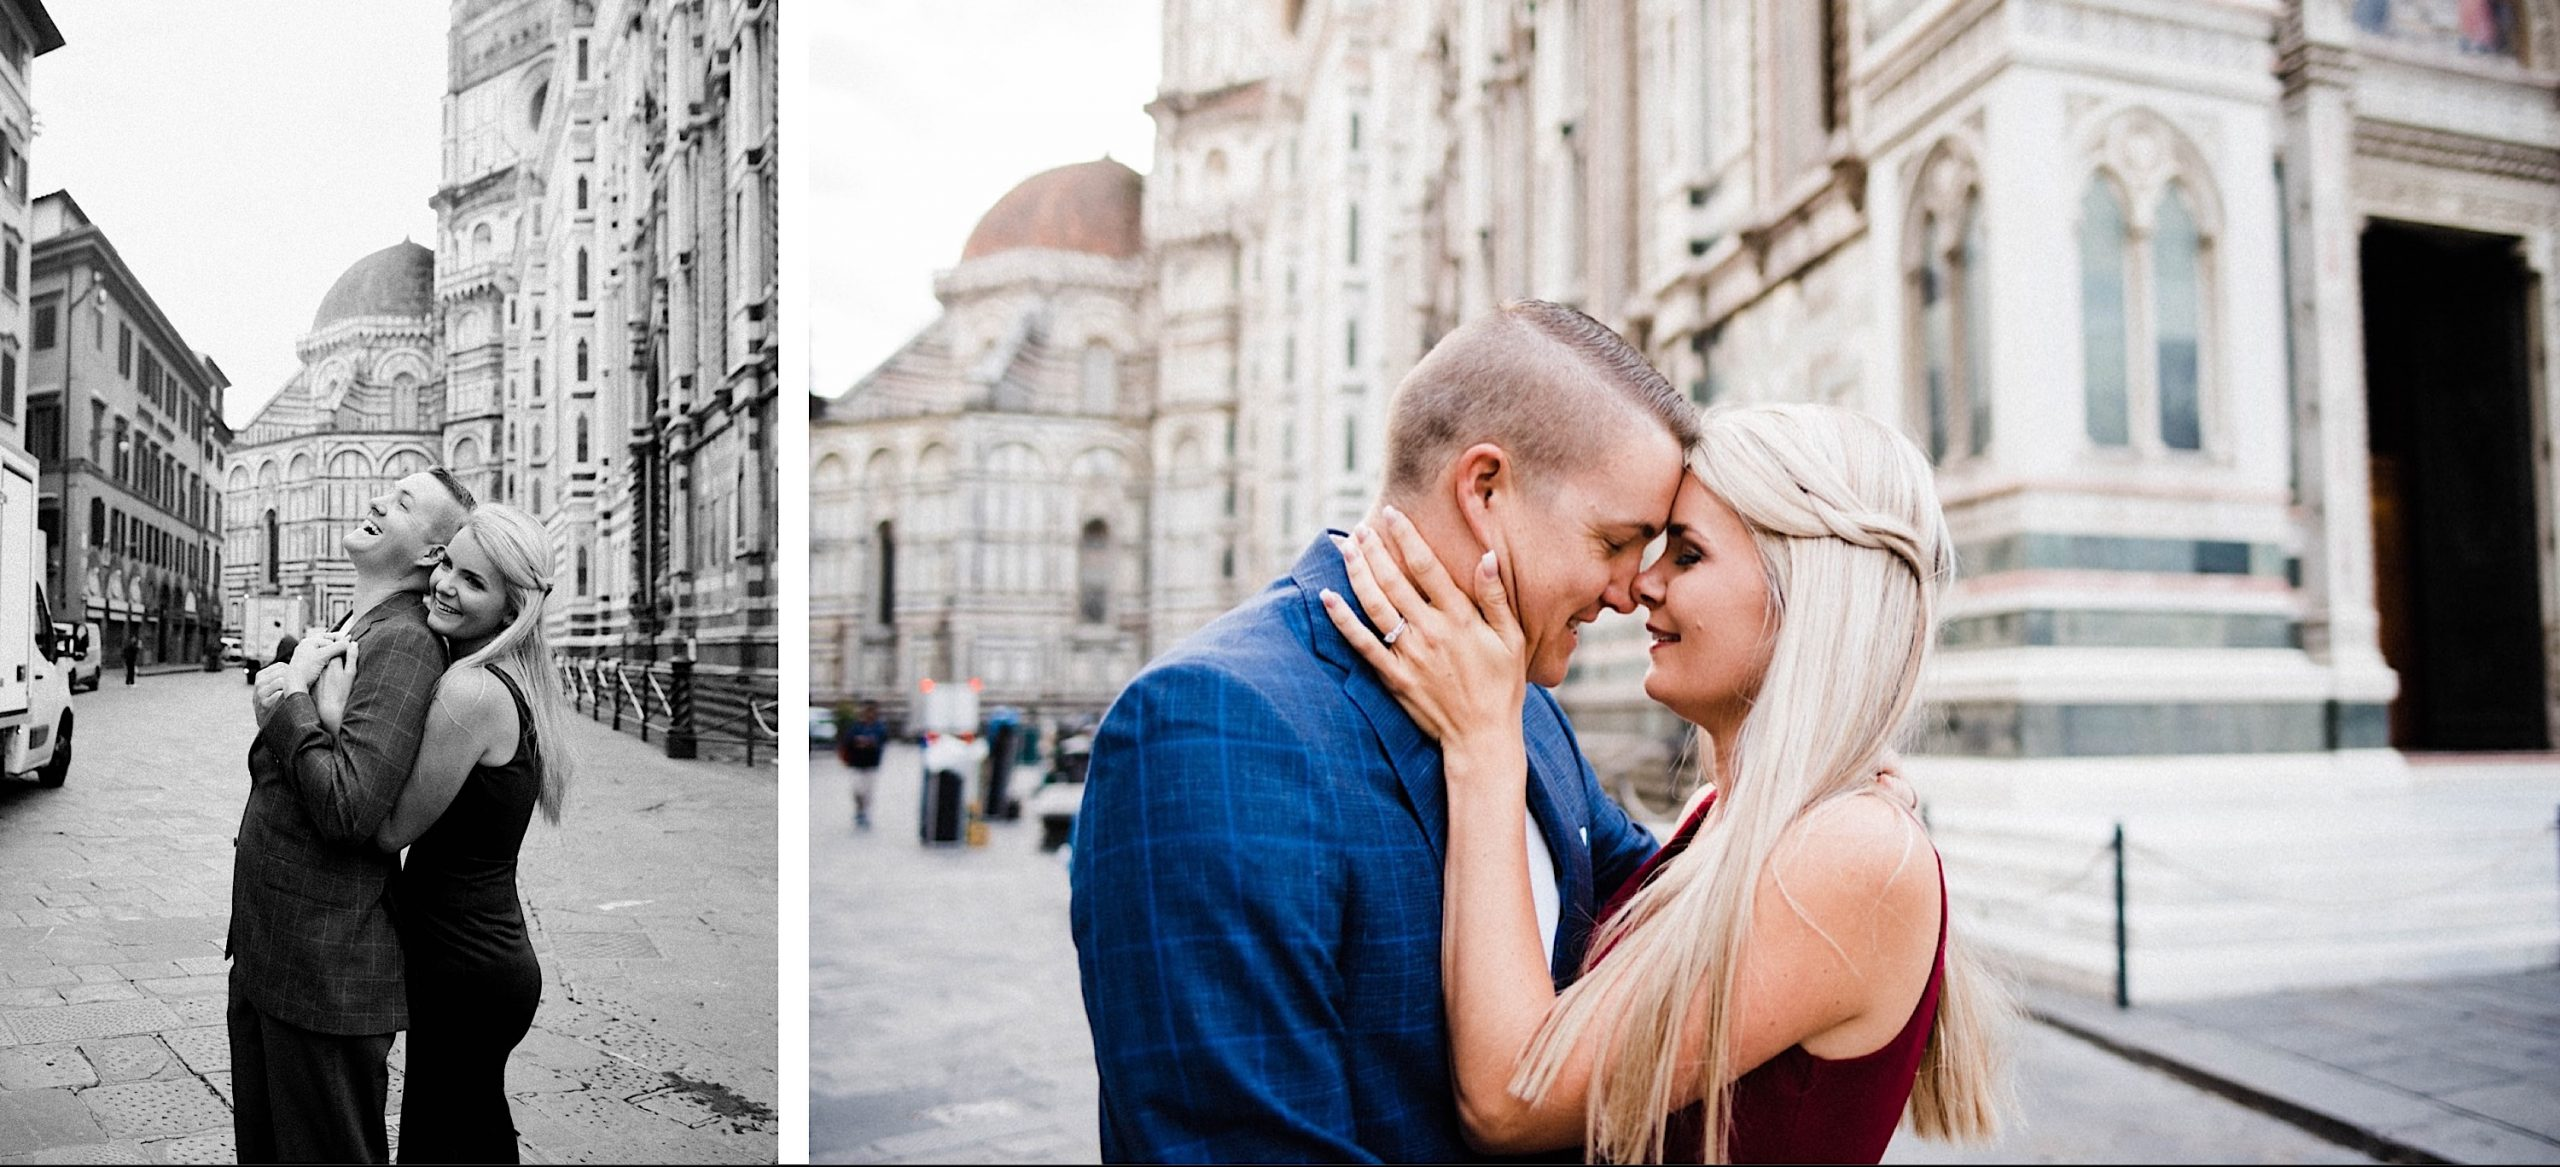 Left: a black & white portrait image of a woman hugging her husband from behind as he laughs. Right: a couple shares a tender moment with the entrance of Florence's Duomo in the background.